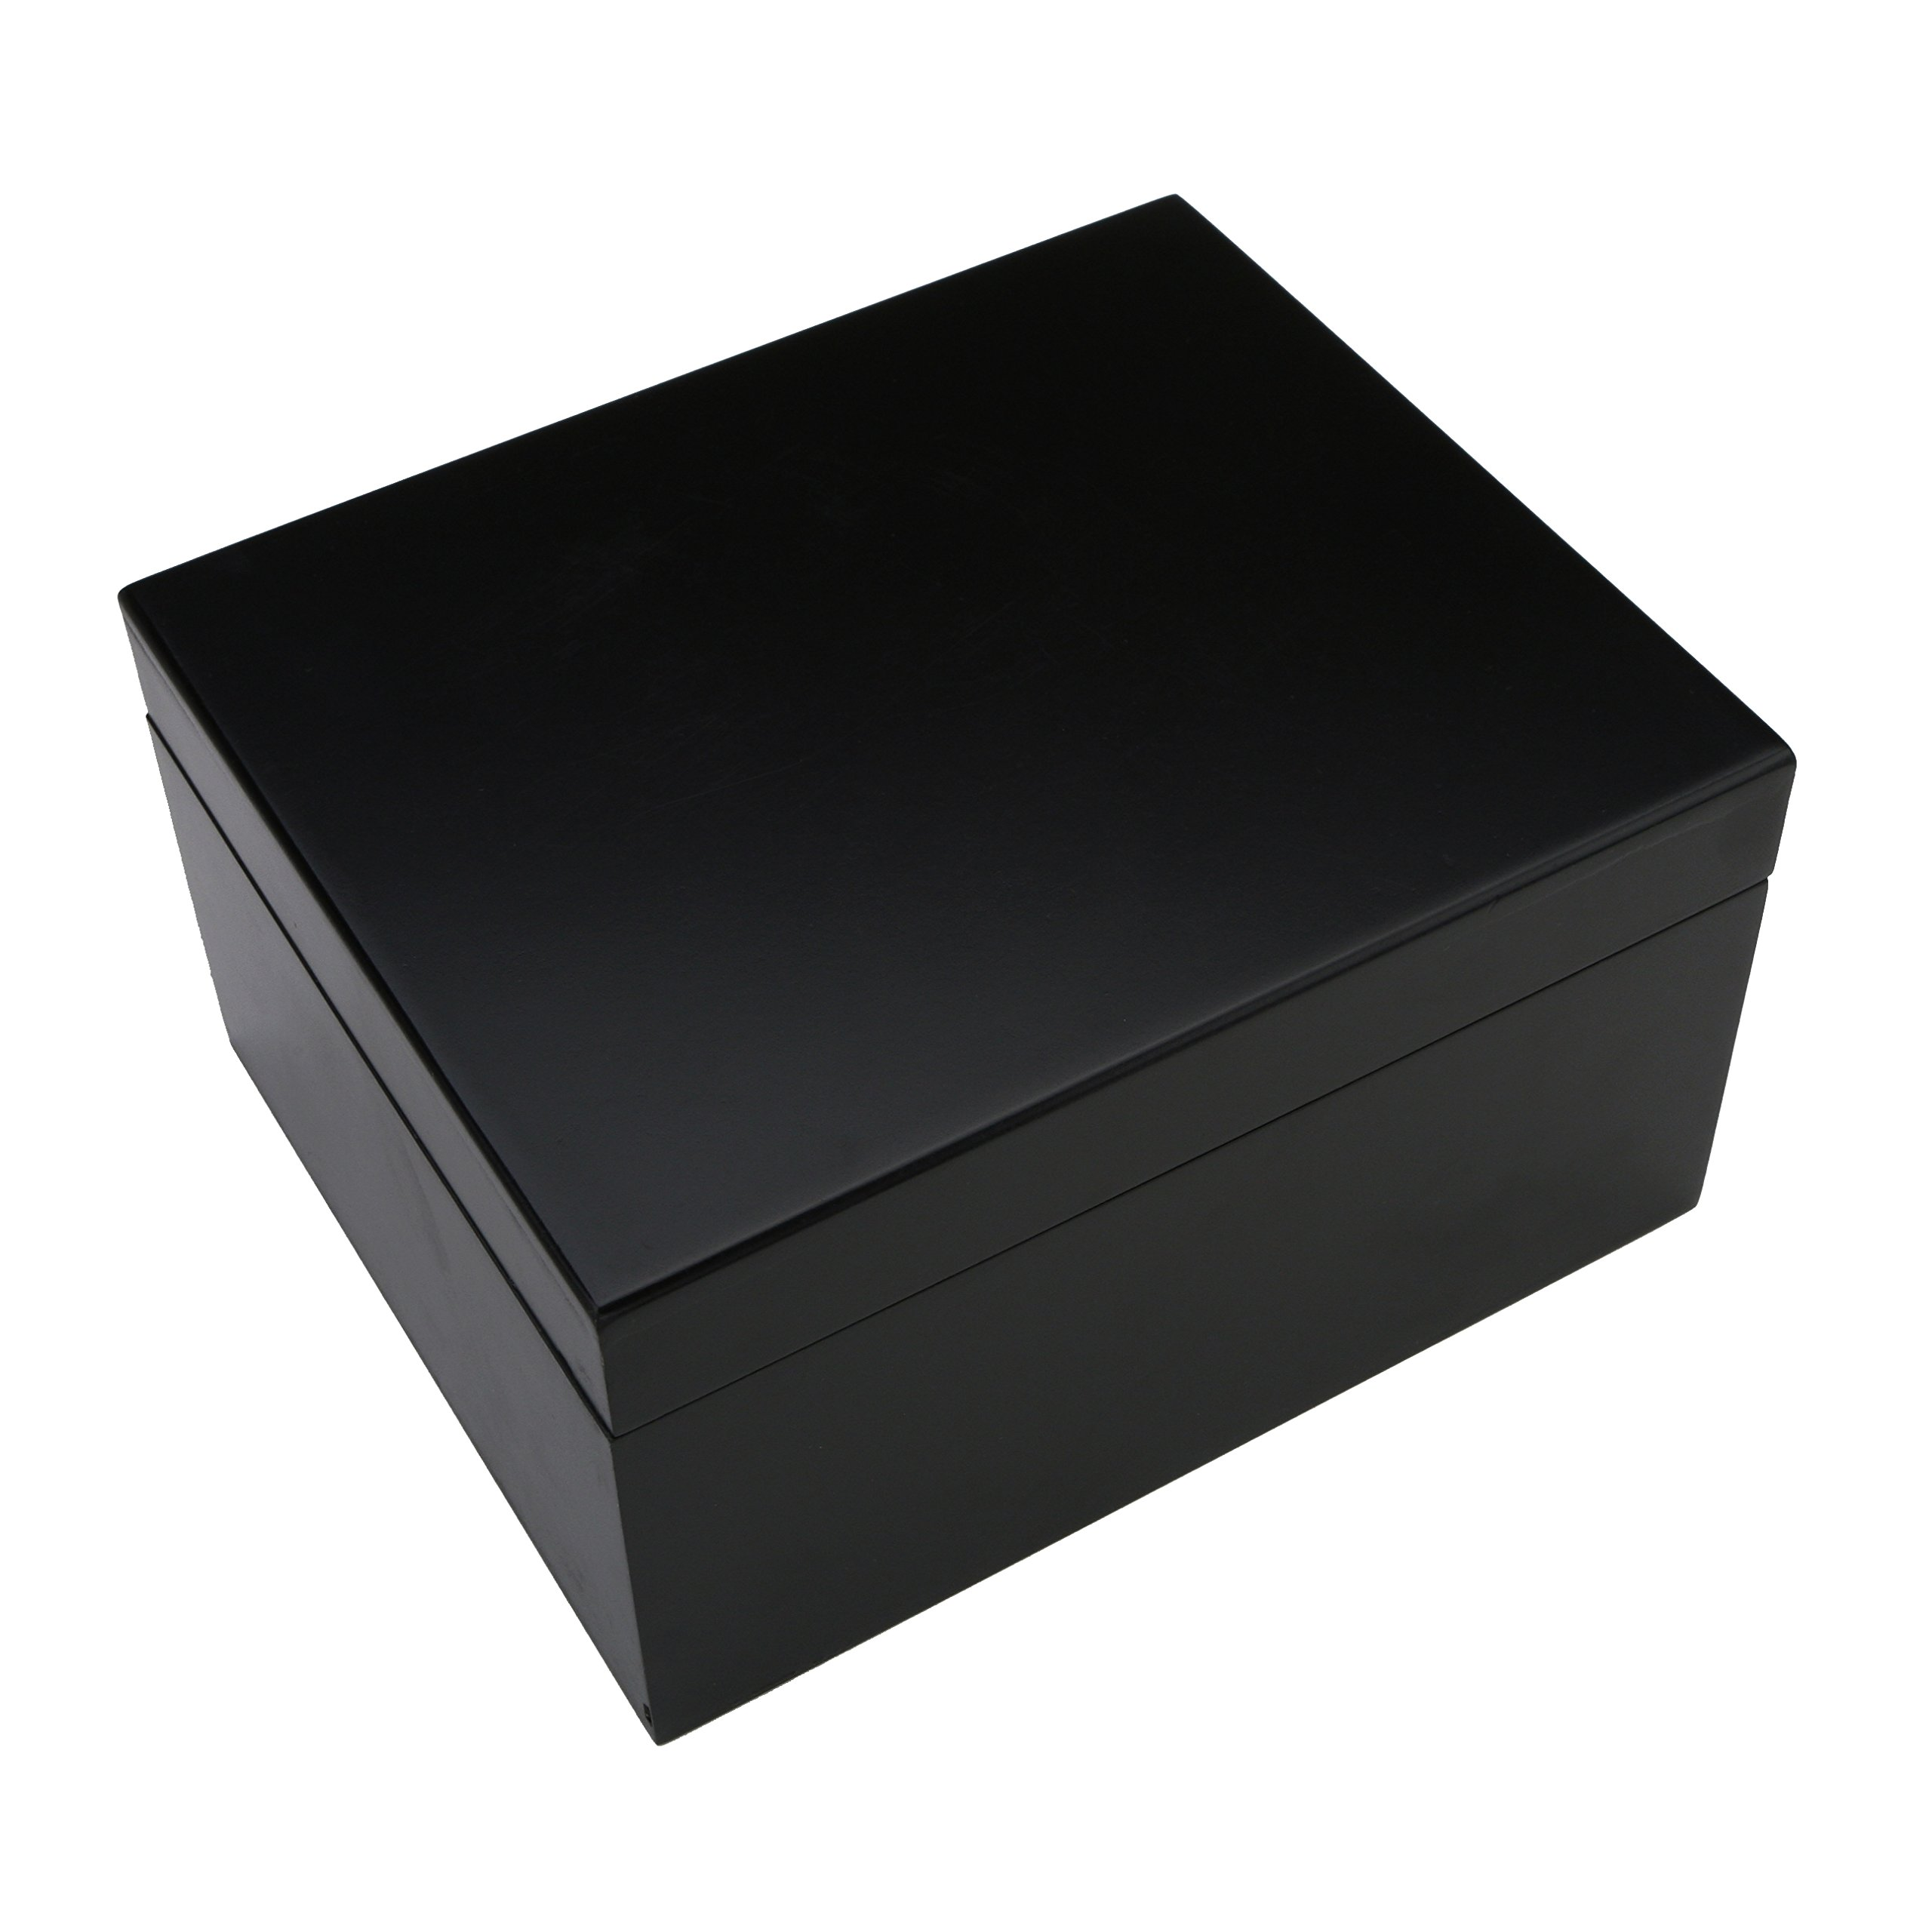 Original Black Storage Box - Teabag Storage, Remote Storage, Stash Box